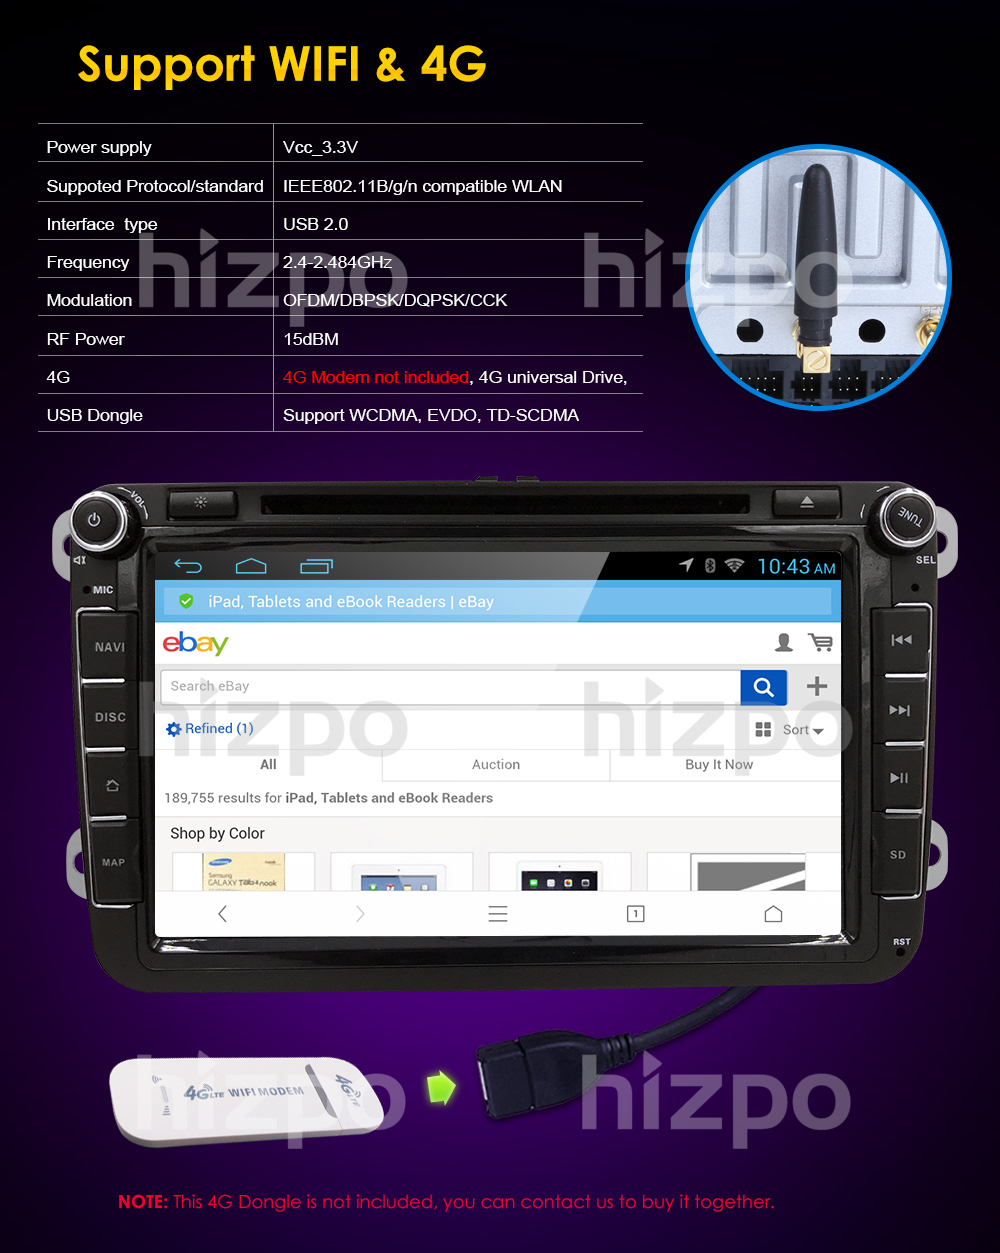 Autoradio 2 din android 80 car dvd player for amarok vw t5 skoda note the seller shipping method to australia spain germany kingdom italy france ireland is no tax line buyers form these countries do not have to fandeluxe Image collections